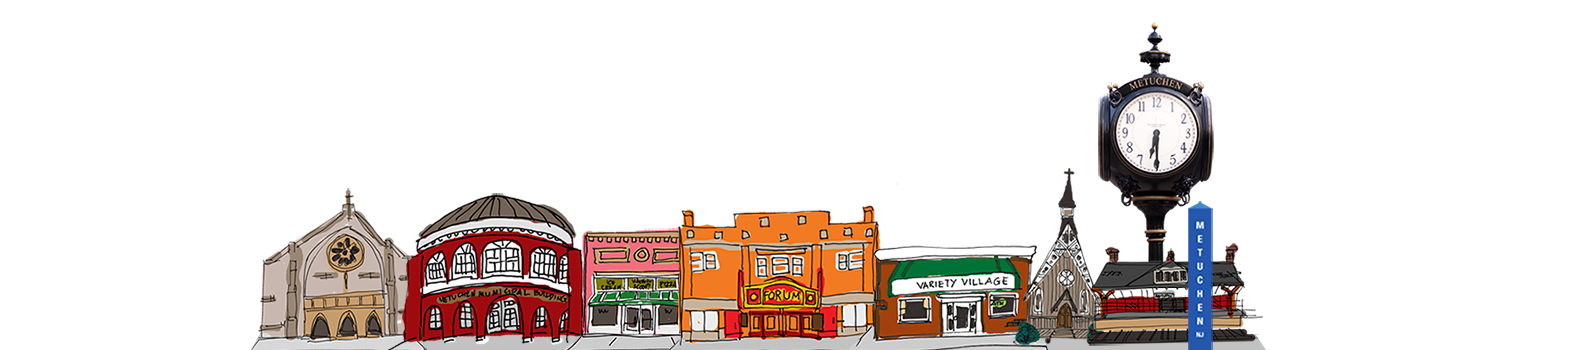 People, Events & Places in the Brainy Borough